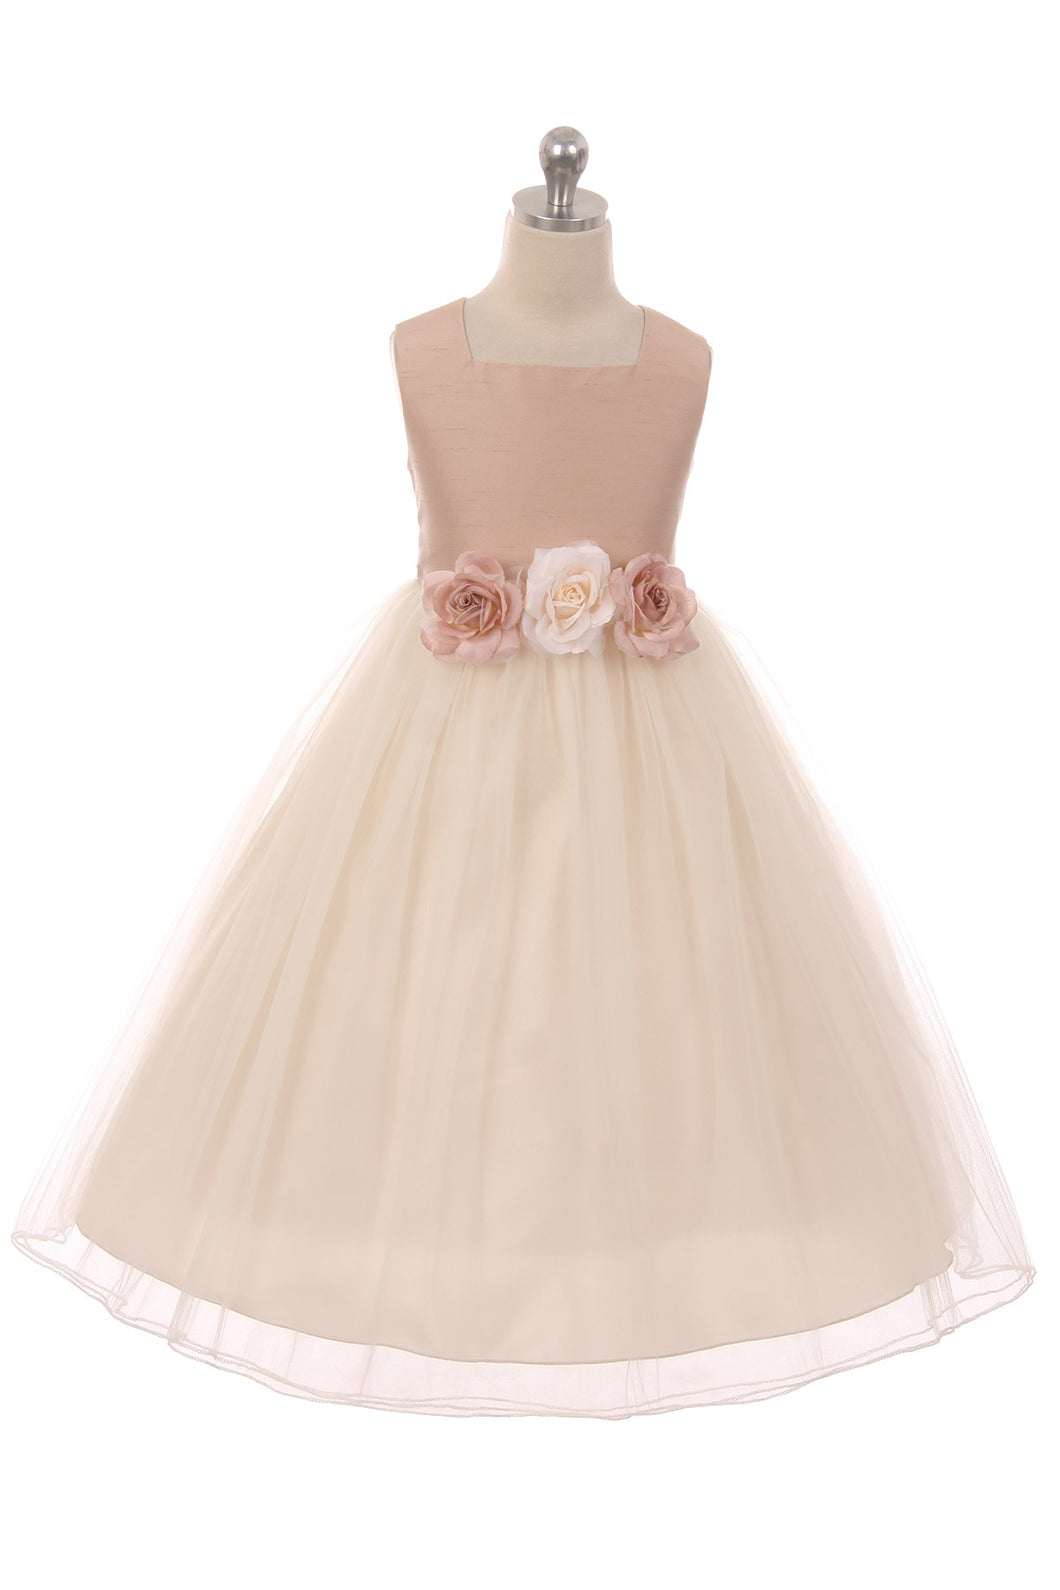 Style No. 428 - Vintage Rose Satin Tulle Dress